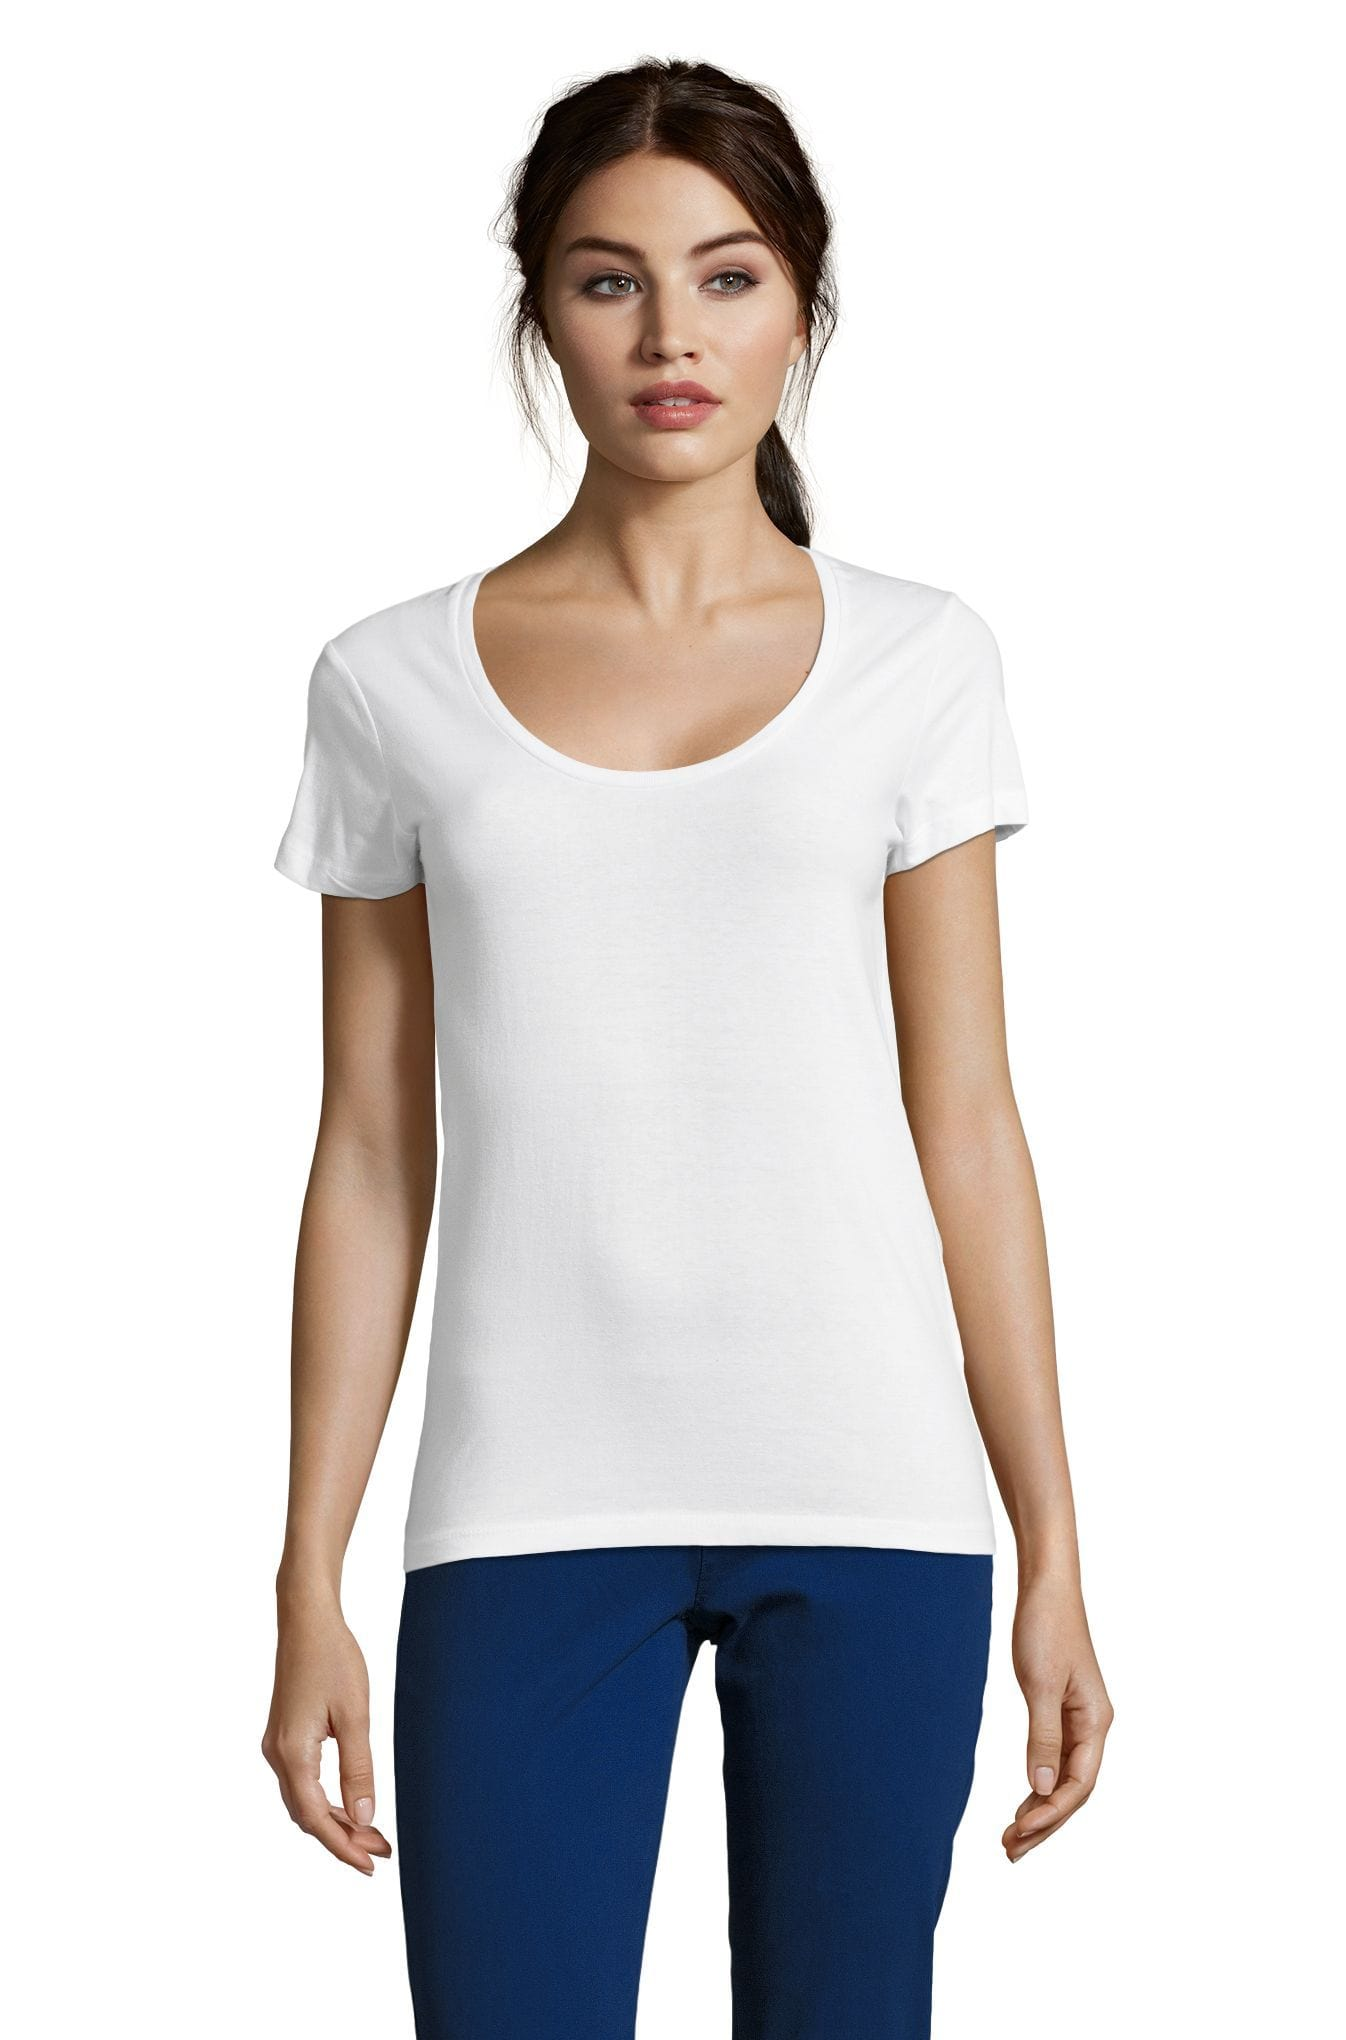 <span>Simple Order</span> • <span>Custom Women&#x27;s Scoop Neck T-shirt</span> • <span>Your multicolor design on the t-shirt color of your choice</span> (12 <span>colors</span>)